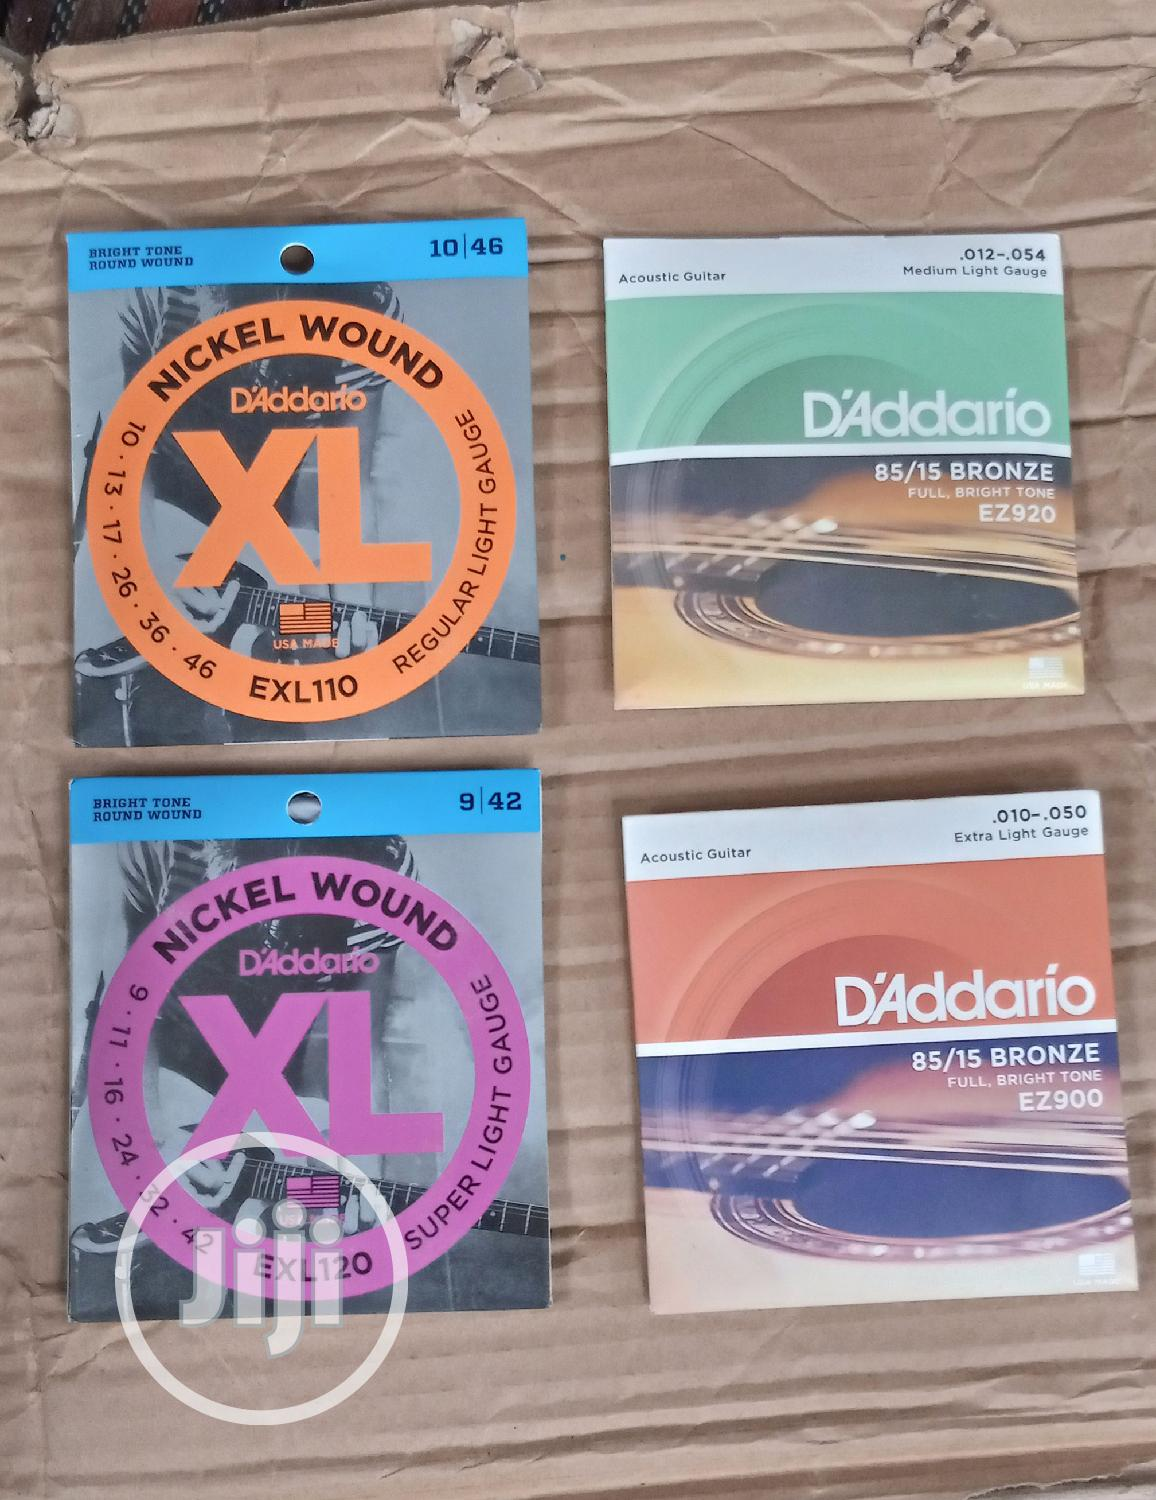 Daddario Guitar Strings Lead And Box | Musical Instruments & Gear for sale in Mushin, Lagos State, Nigeria